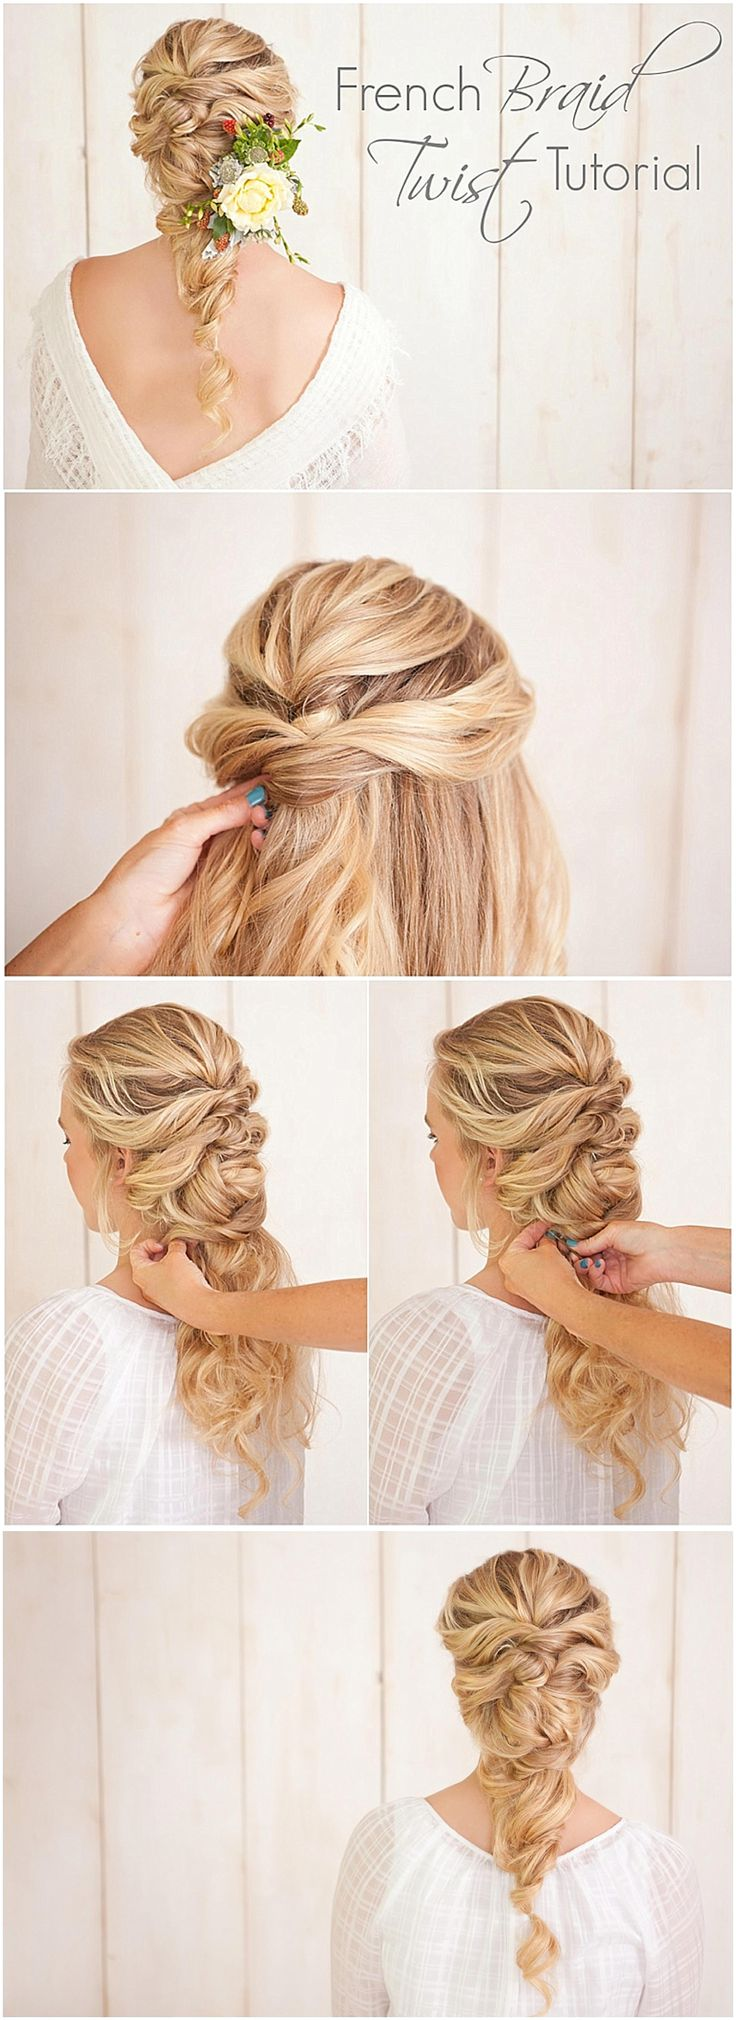 French Braid Twist Tutorial.